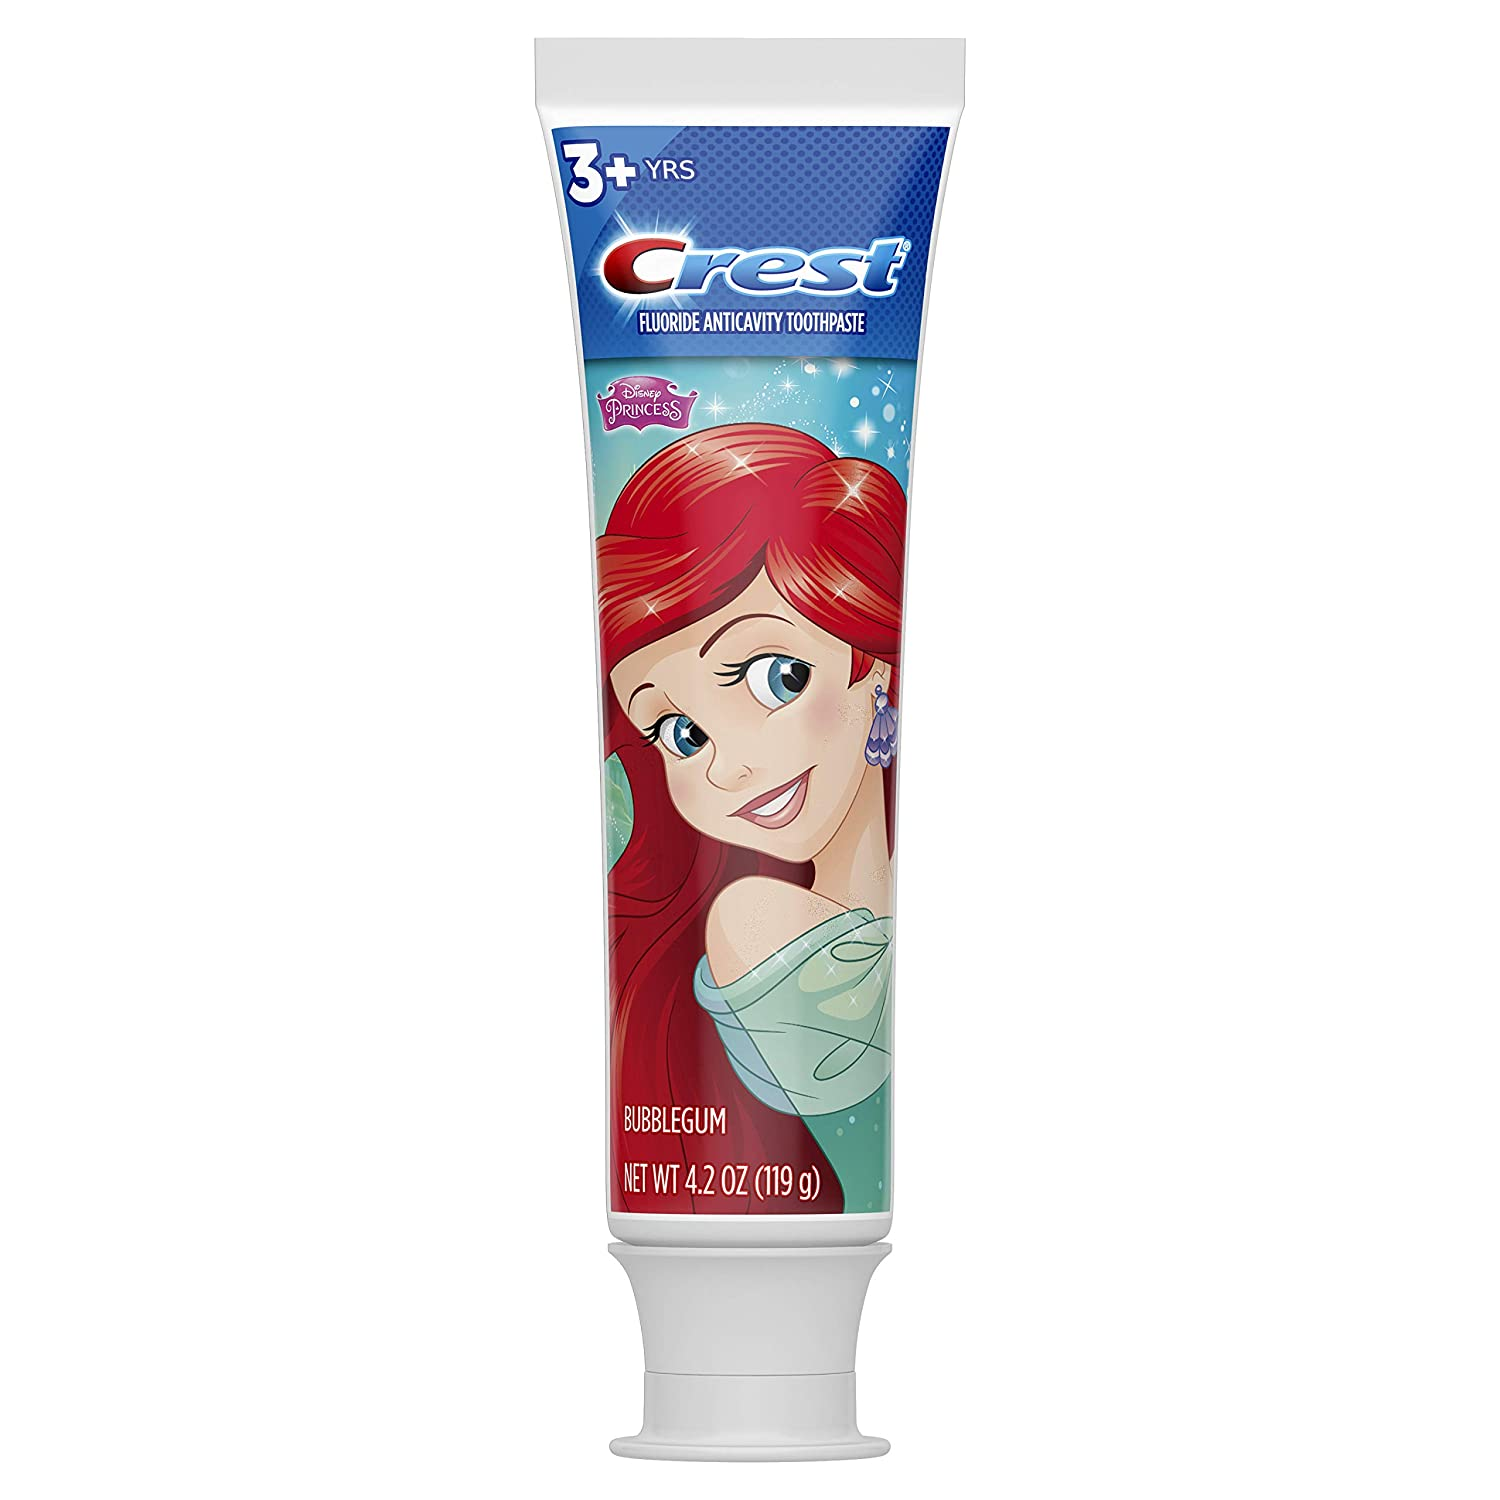 Crest Pro-health Stages Disney Princess Kid's Toothpaste 4.2 Oz (Pack of 2)